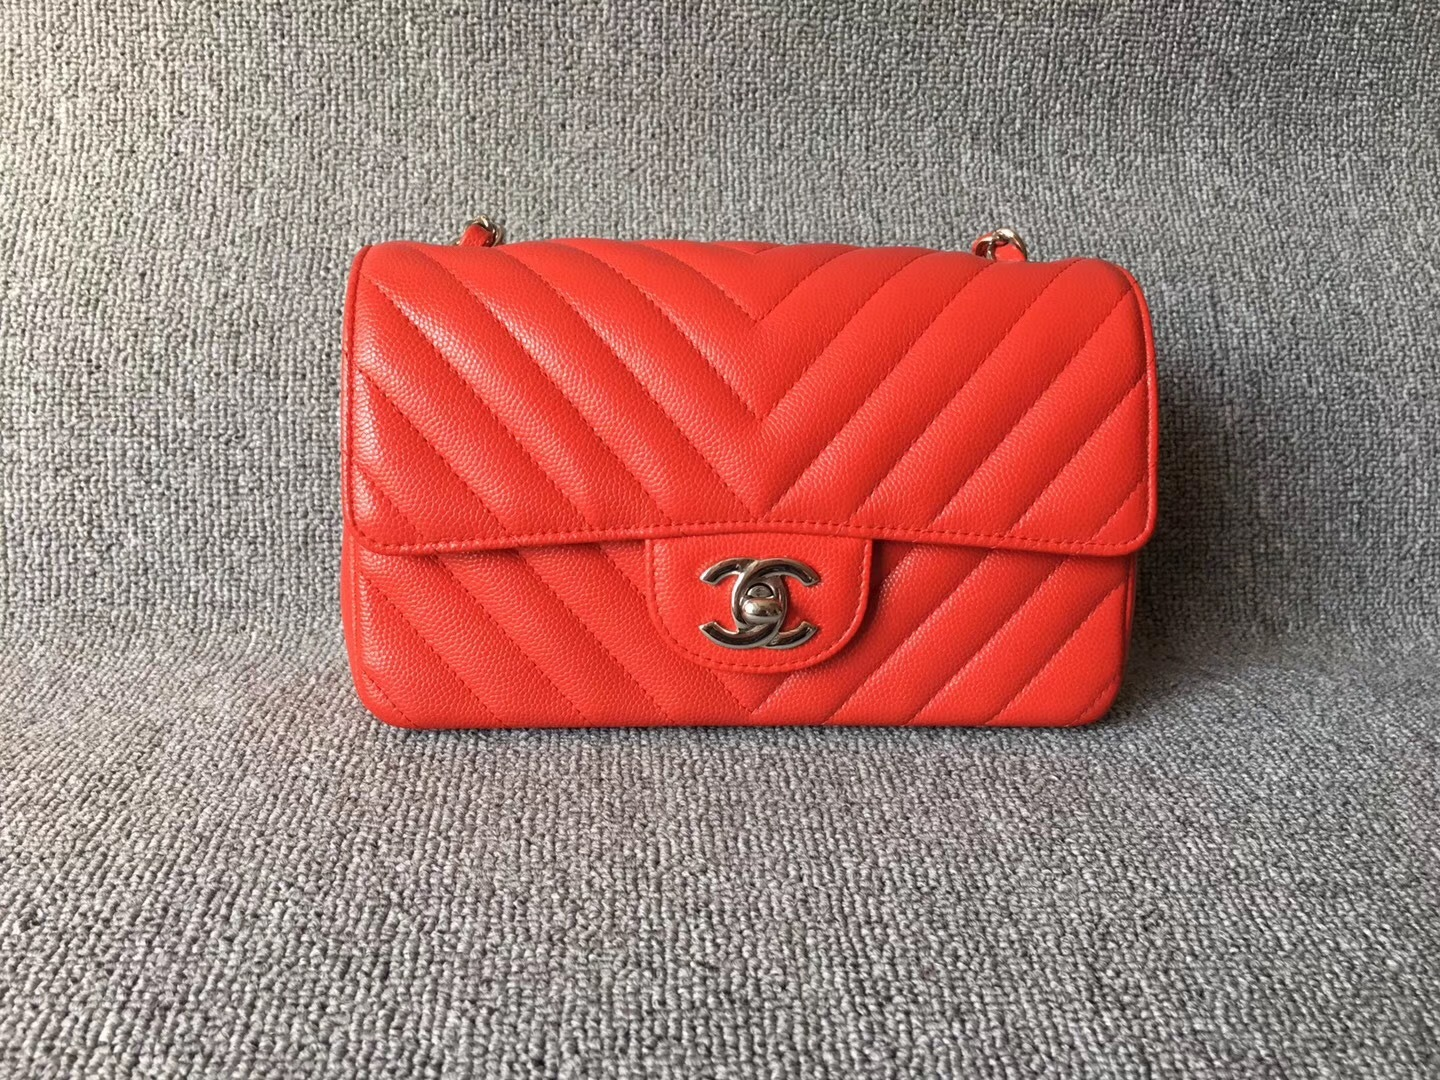 AUTH NEW CHANEL RED PINK CHEVRON CAVIAR LARGE MINI 20CM RECTANGULAR FLAP BAG NEW